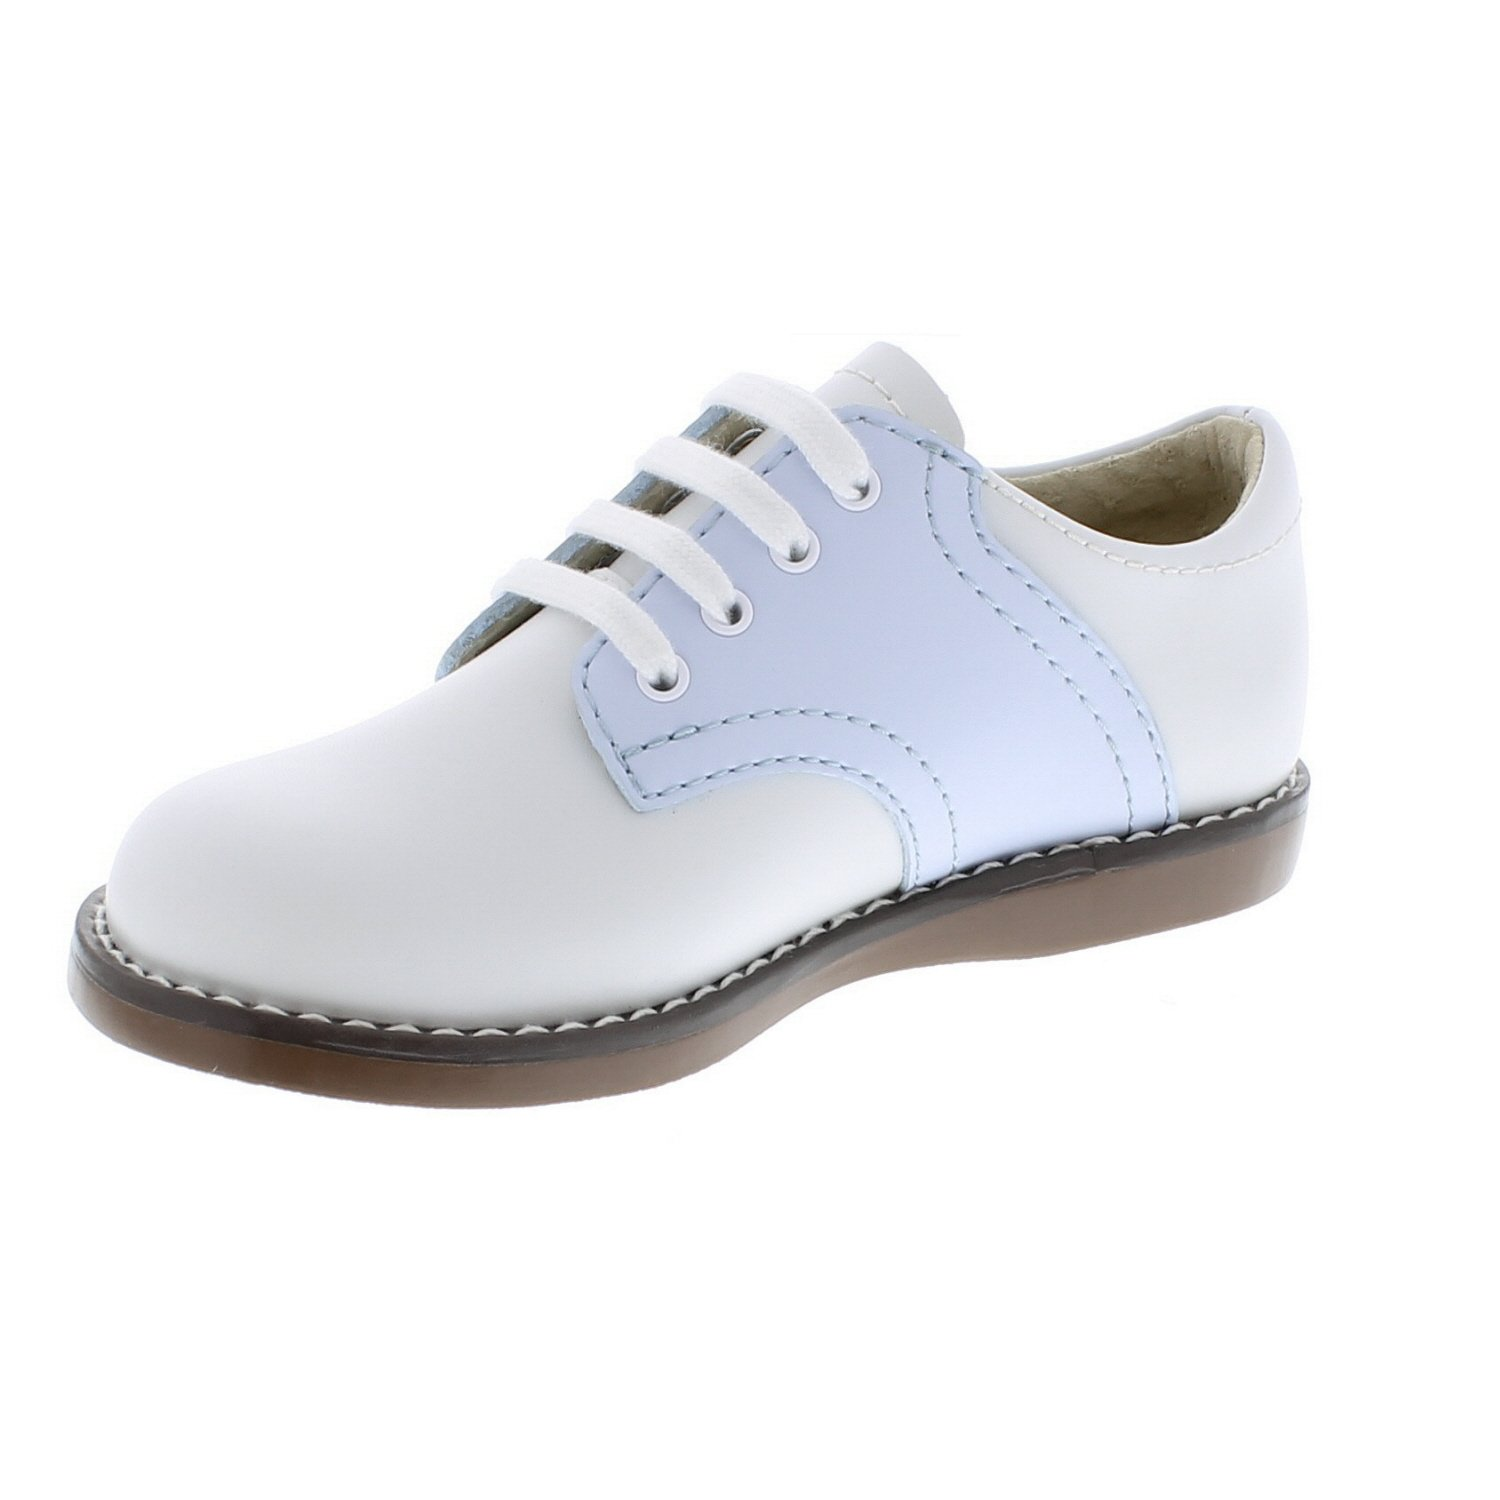 de86aaef6bdb2 Footmates Cheer Laceup Saddle (Infant/Toddler/Little Kid) White/Lt Blue